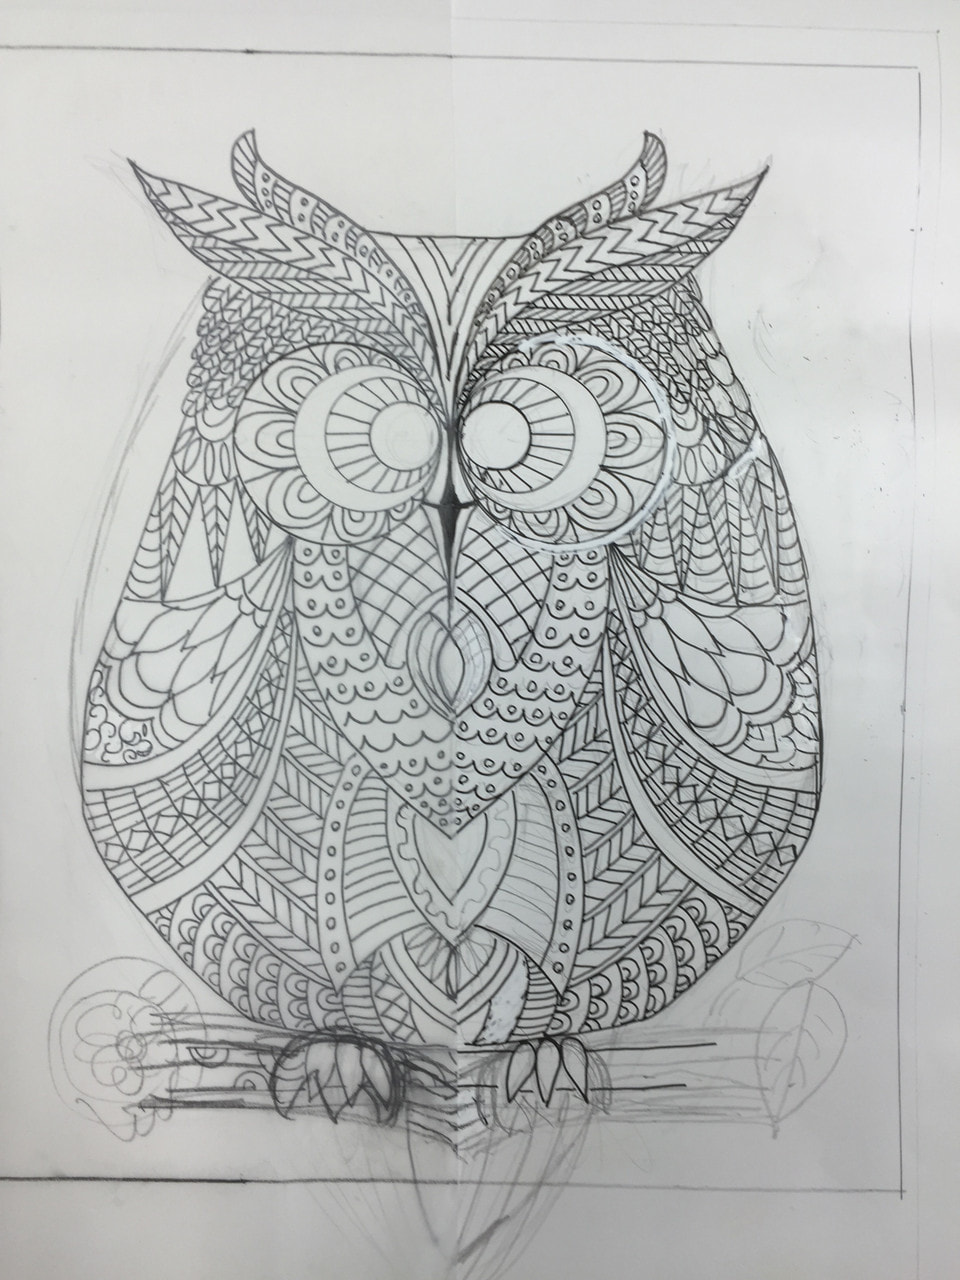 Zentangle Patterns はまってます。